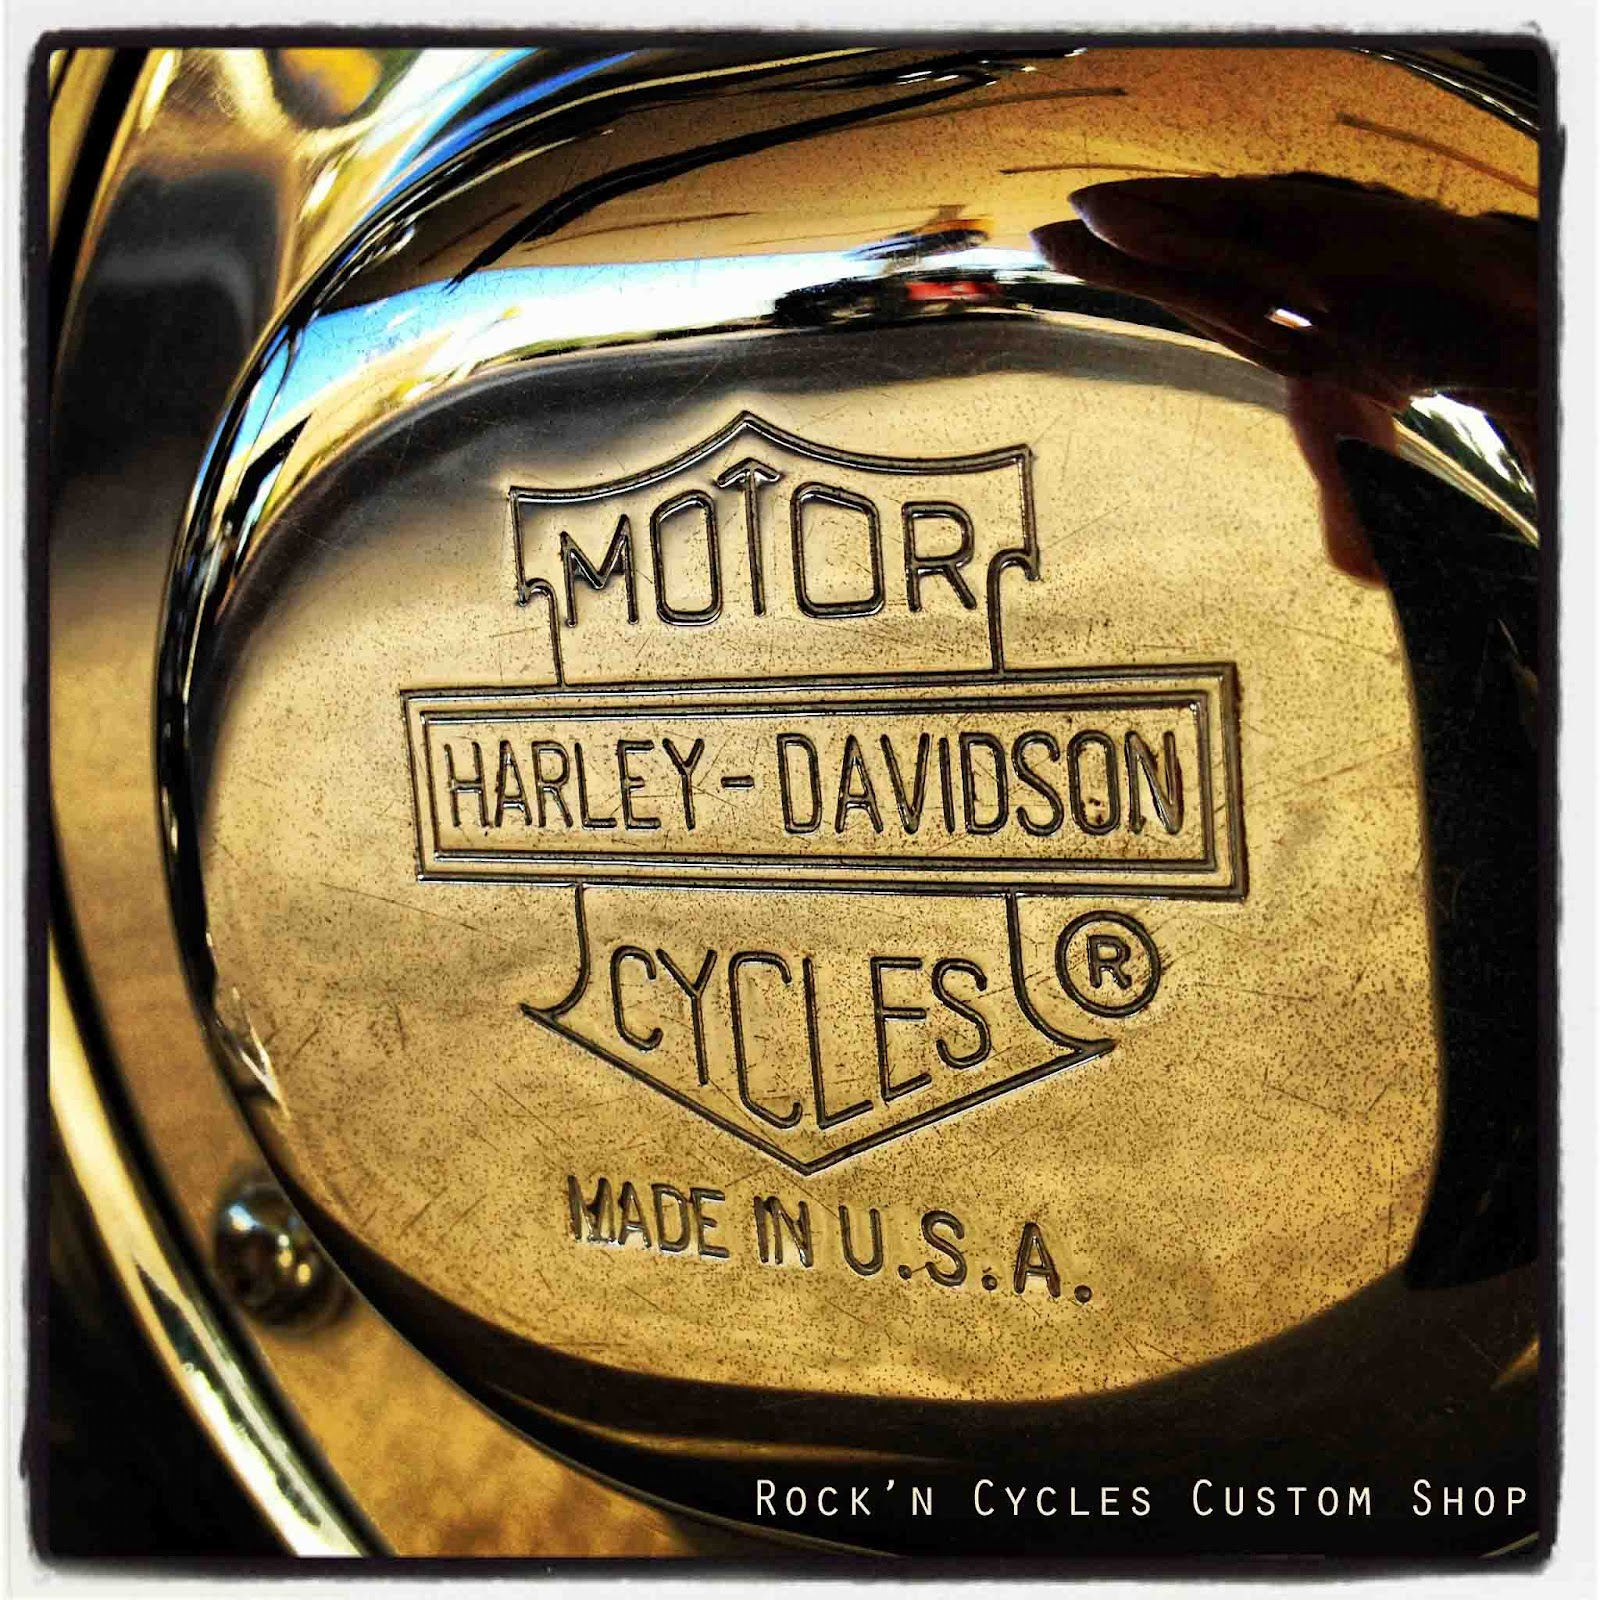 new rock n cycles project novo projeto rock n cycles harley davidson ...